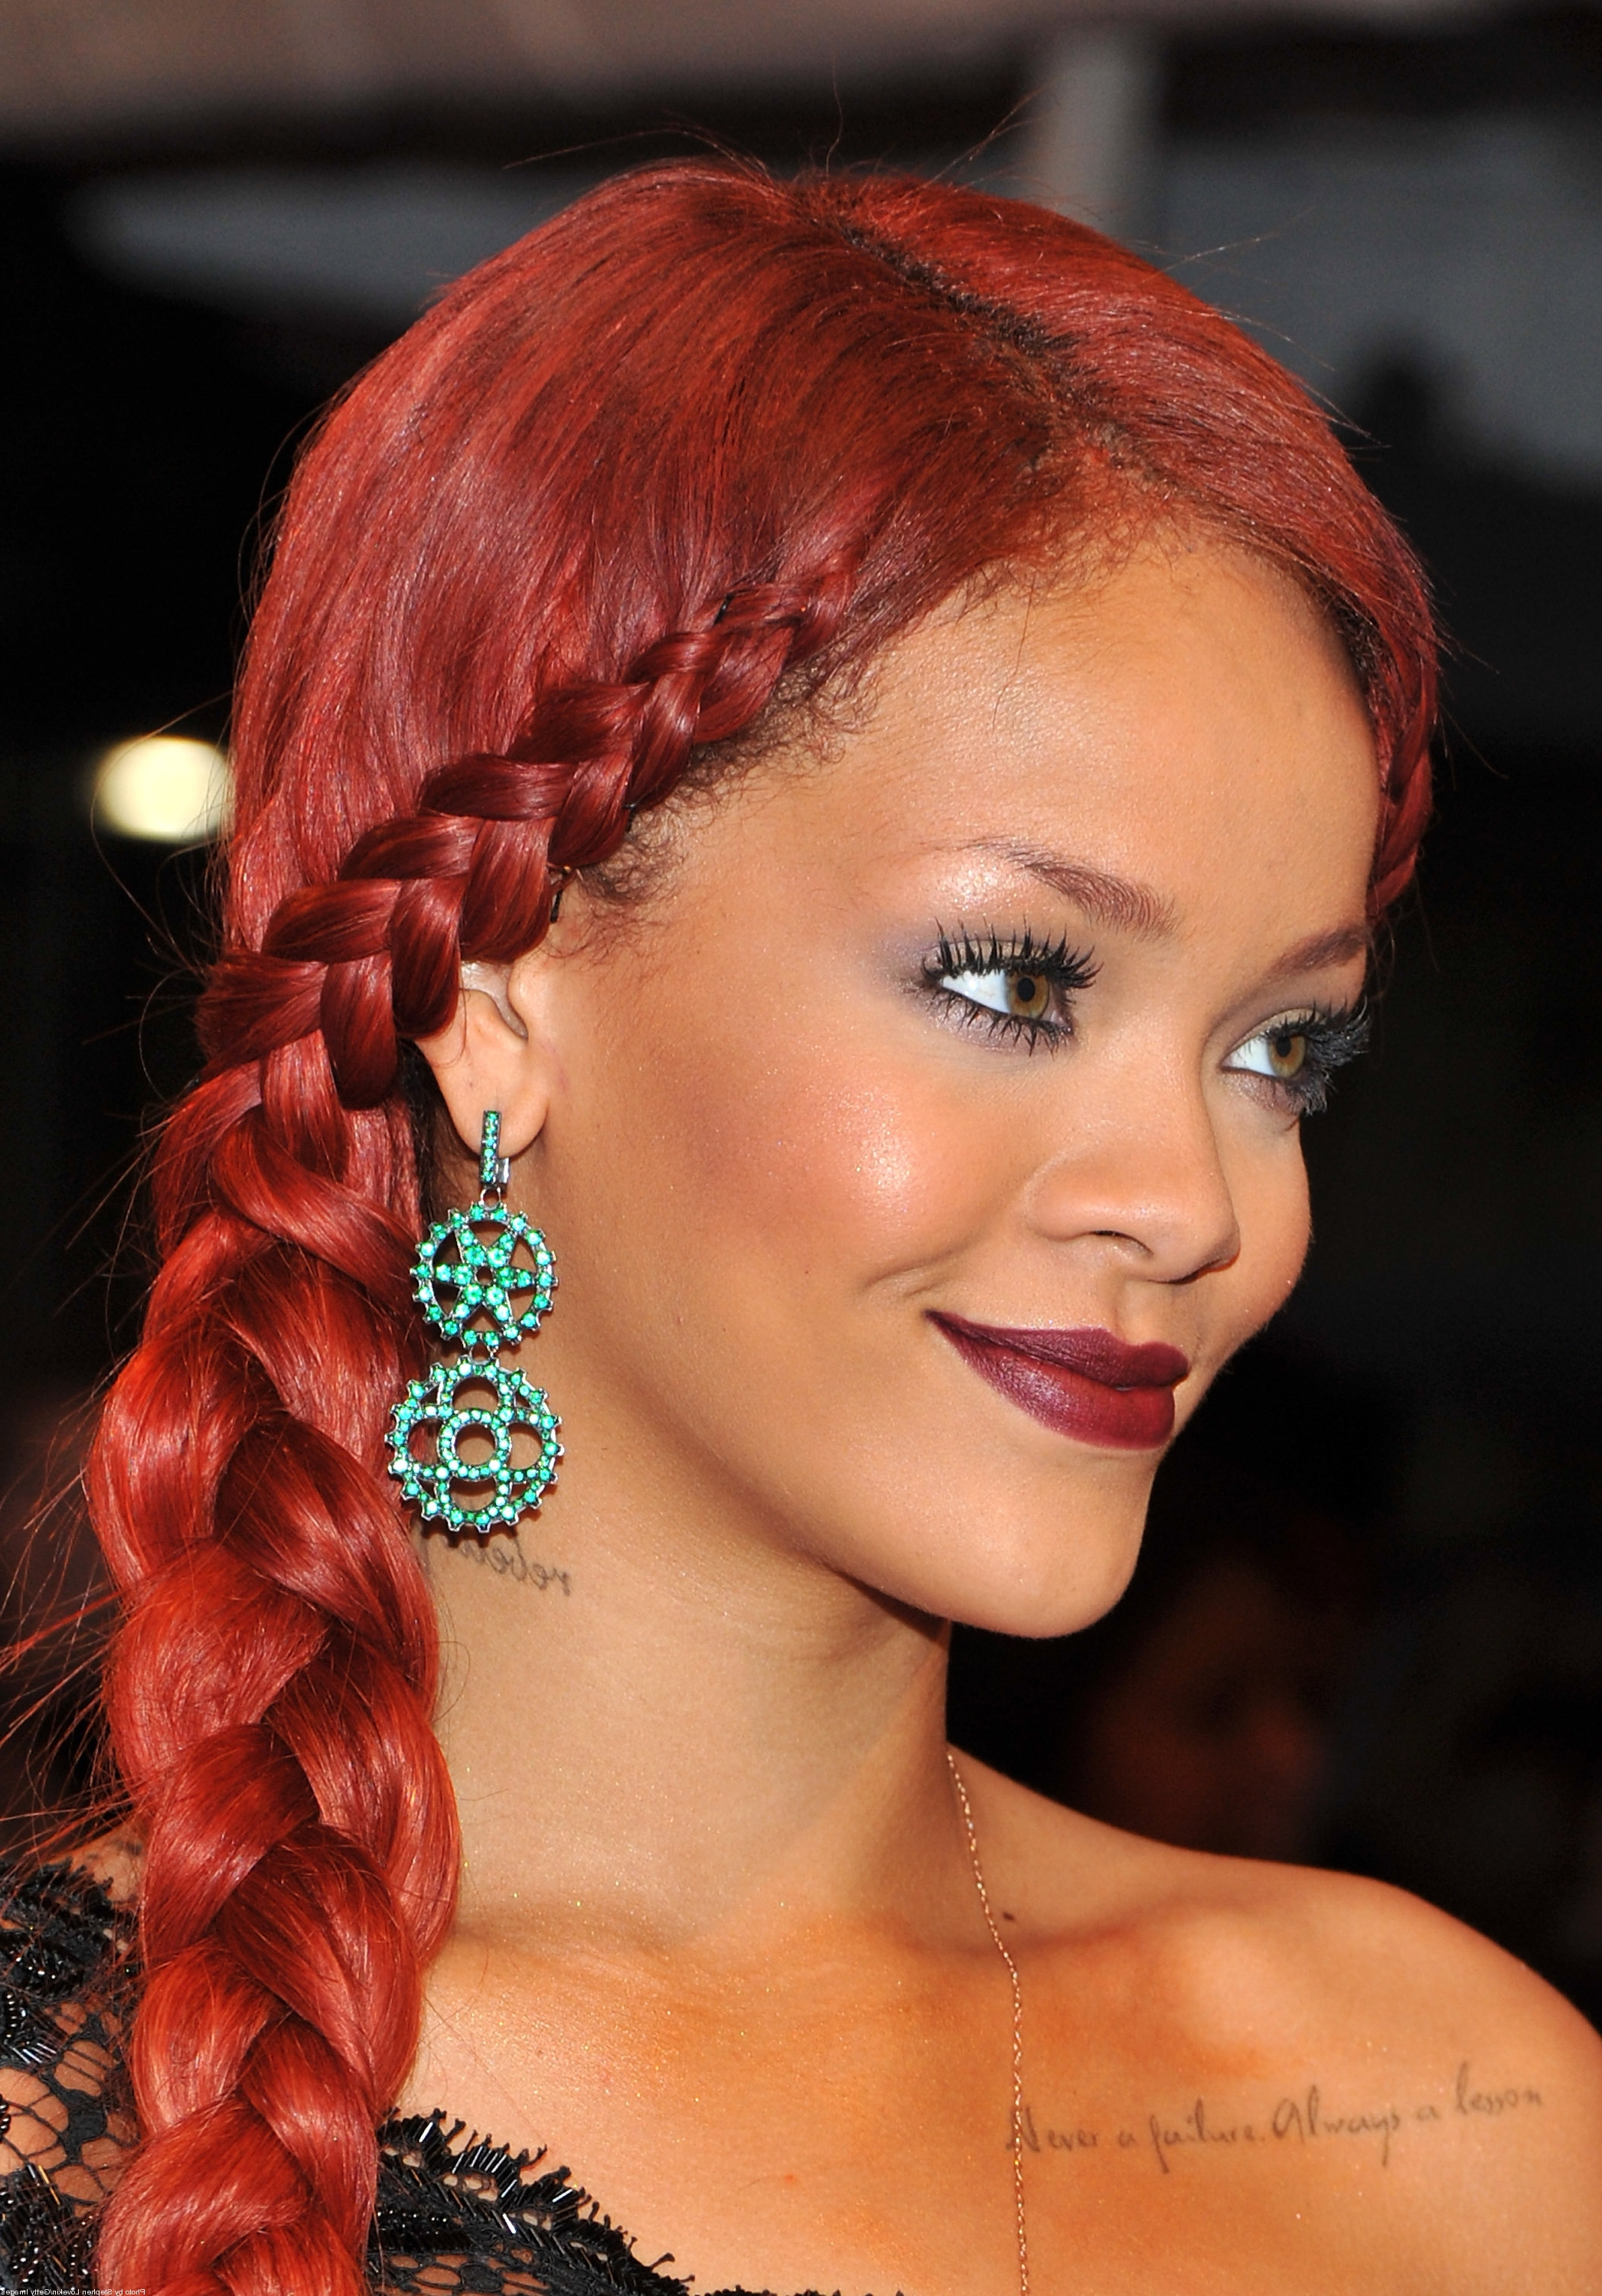 Side Braid Hairstyles Easy Of Braided Hairstyles To The Side Inside Most Popular Red Braided Hairstyles (View 14 of 15)